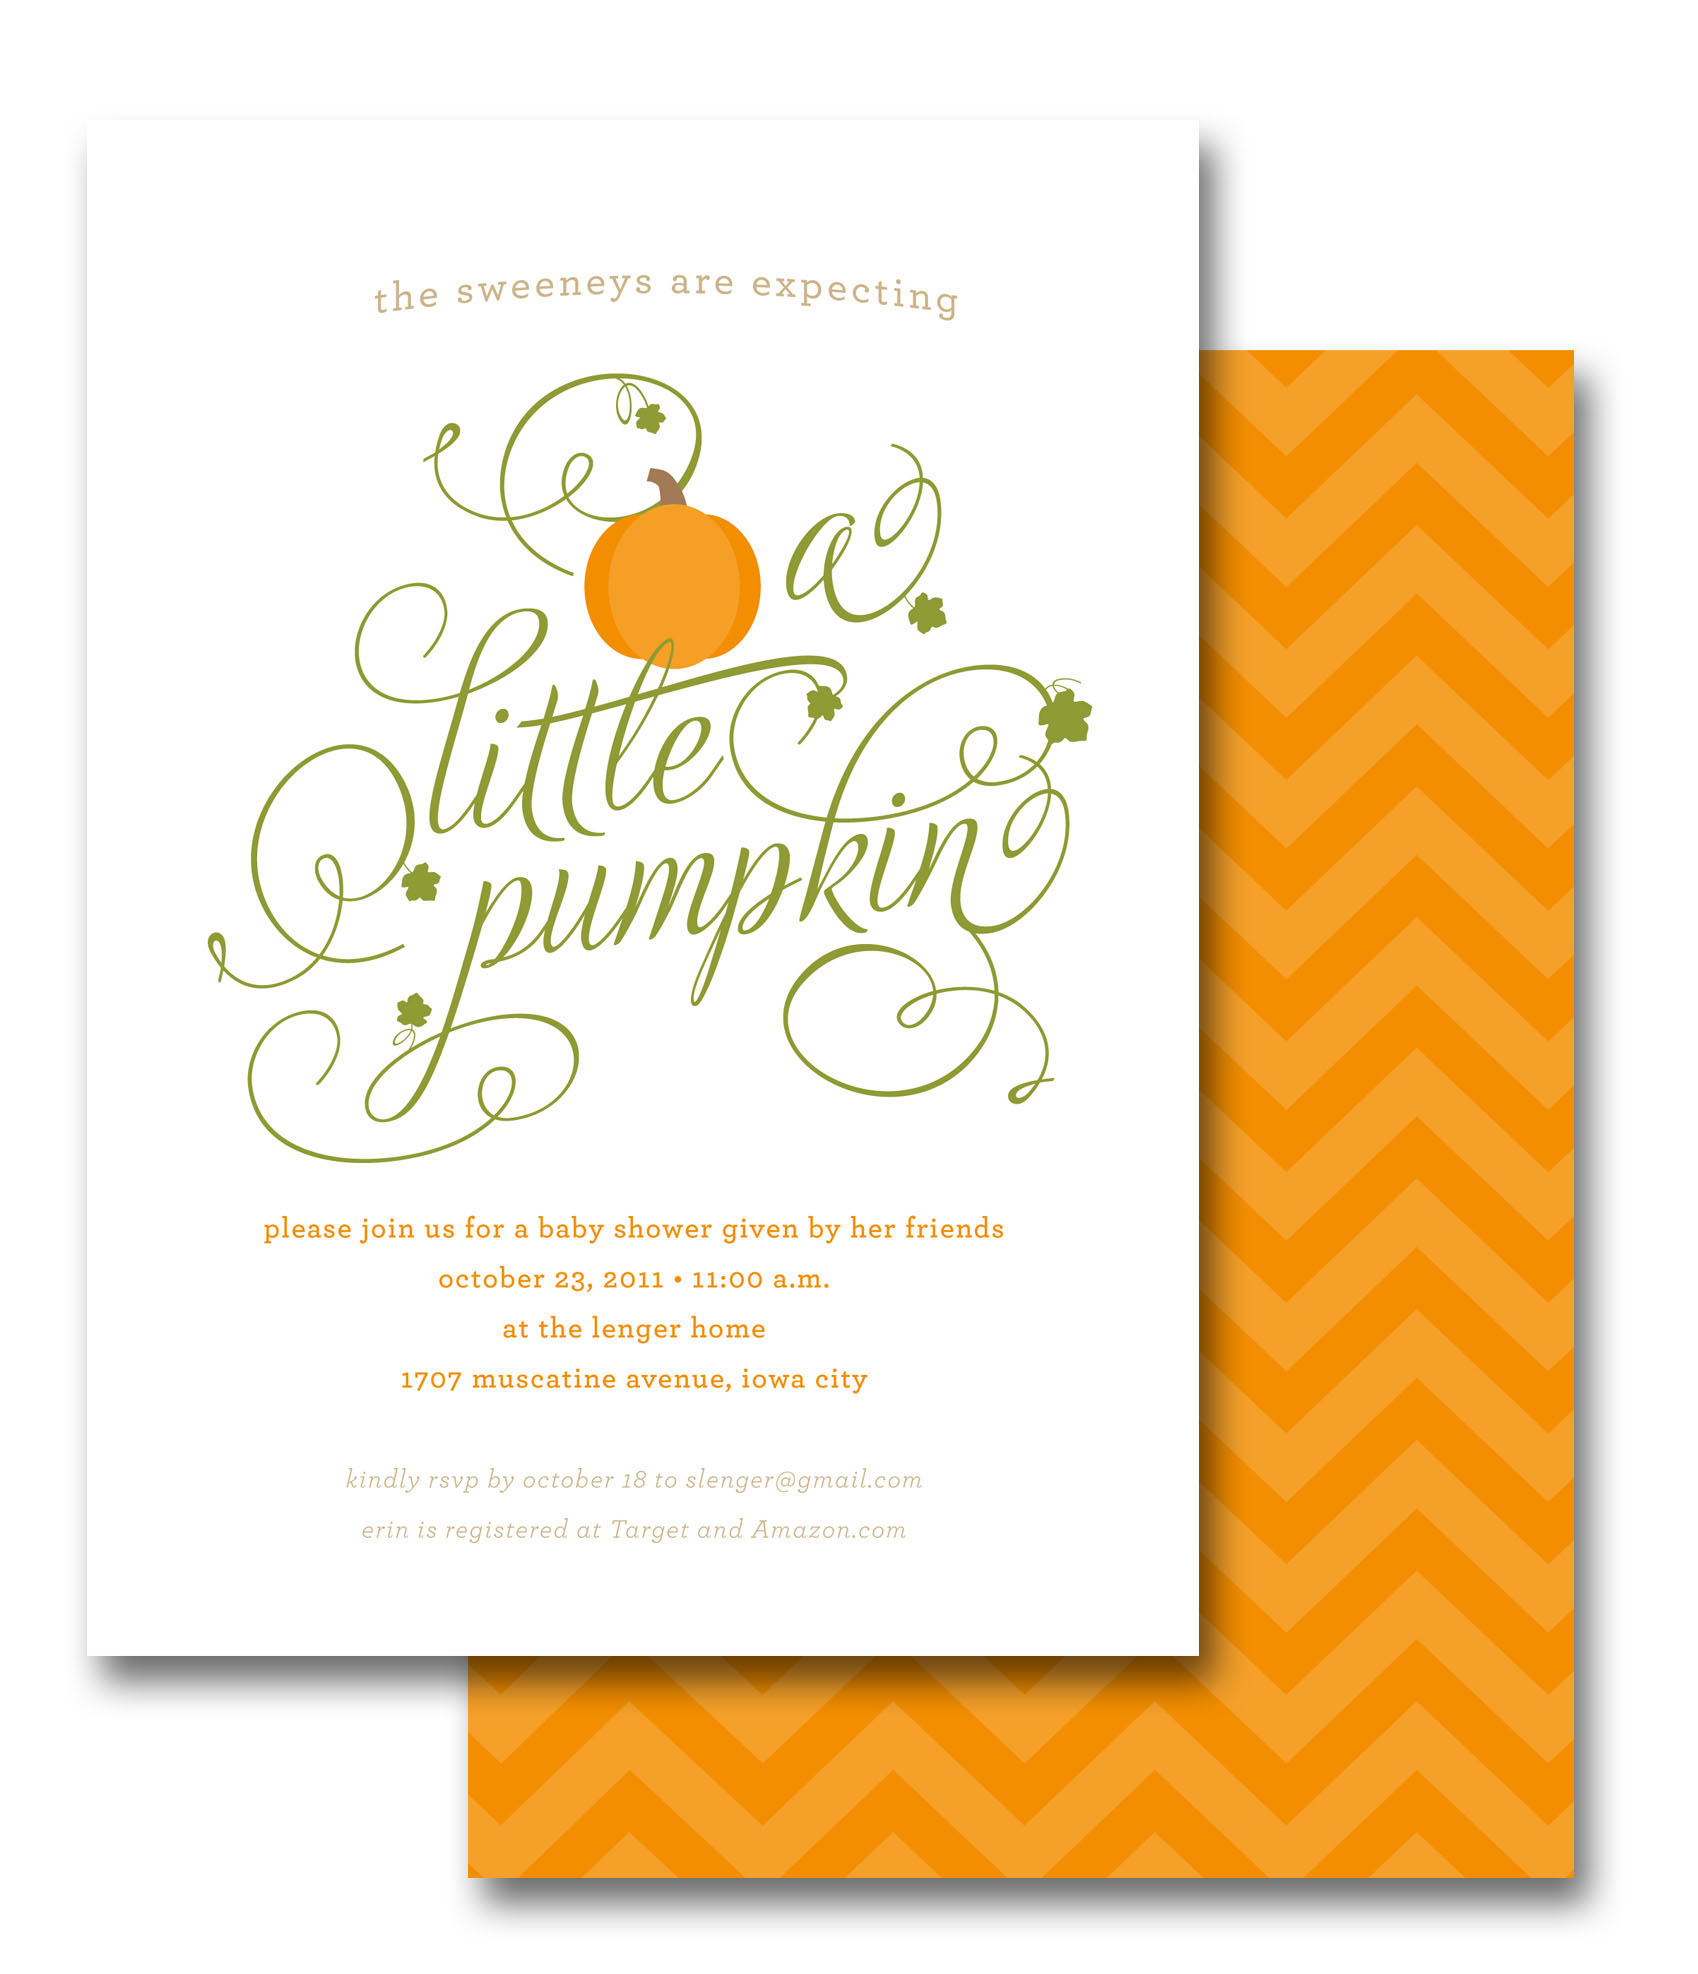 Sarah lenger little pumpkin baby shower invite little pumpkin baby shower invite filmwisefo